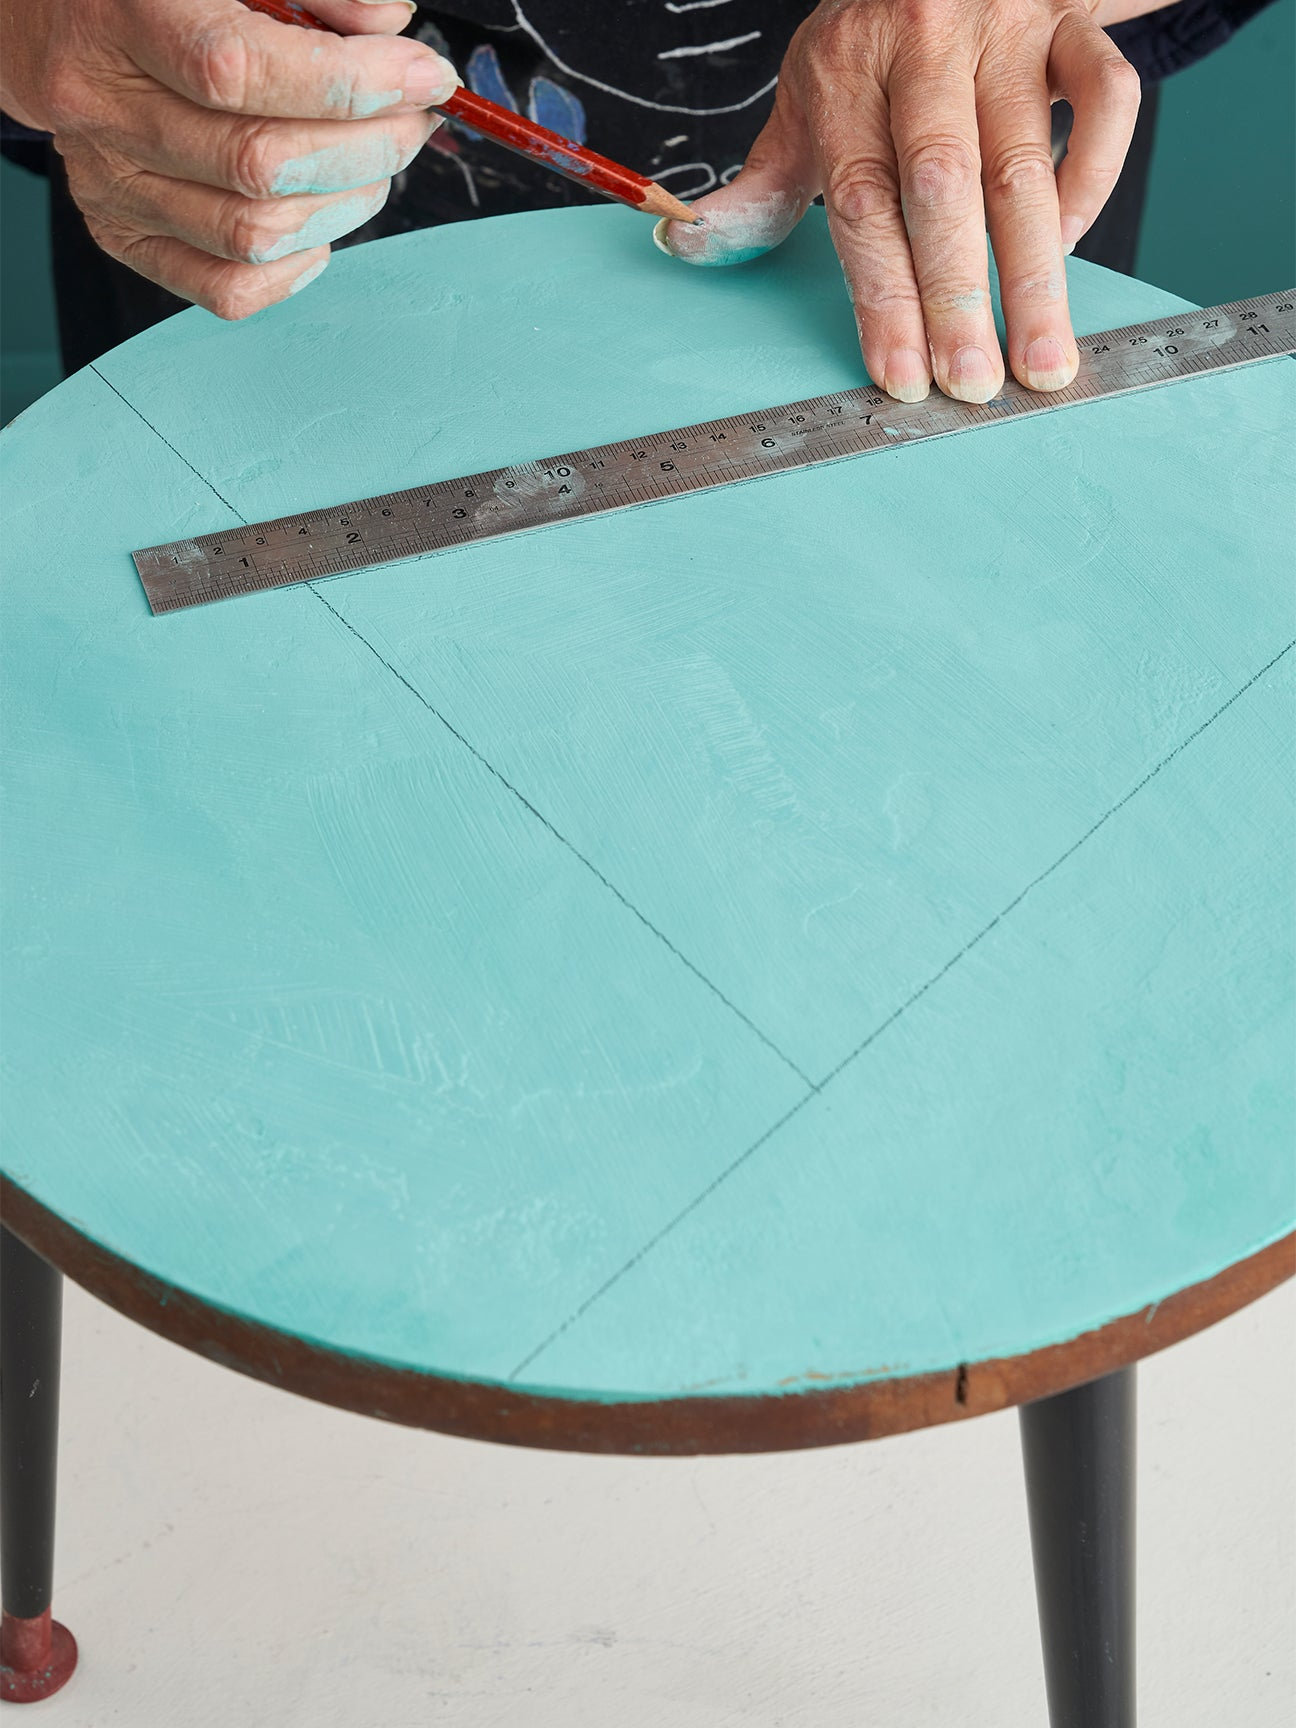 drawing lines on a table